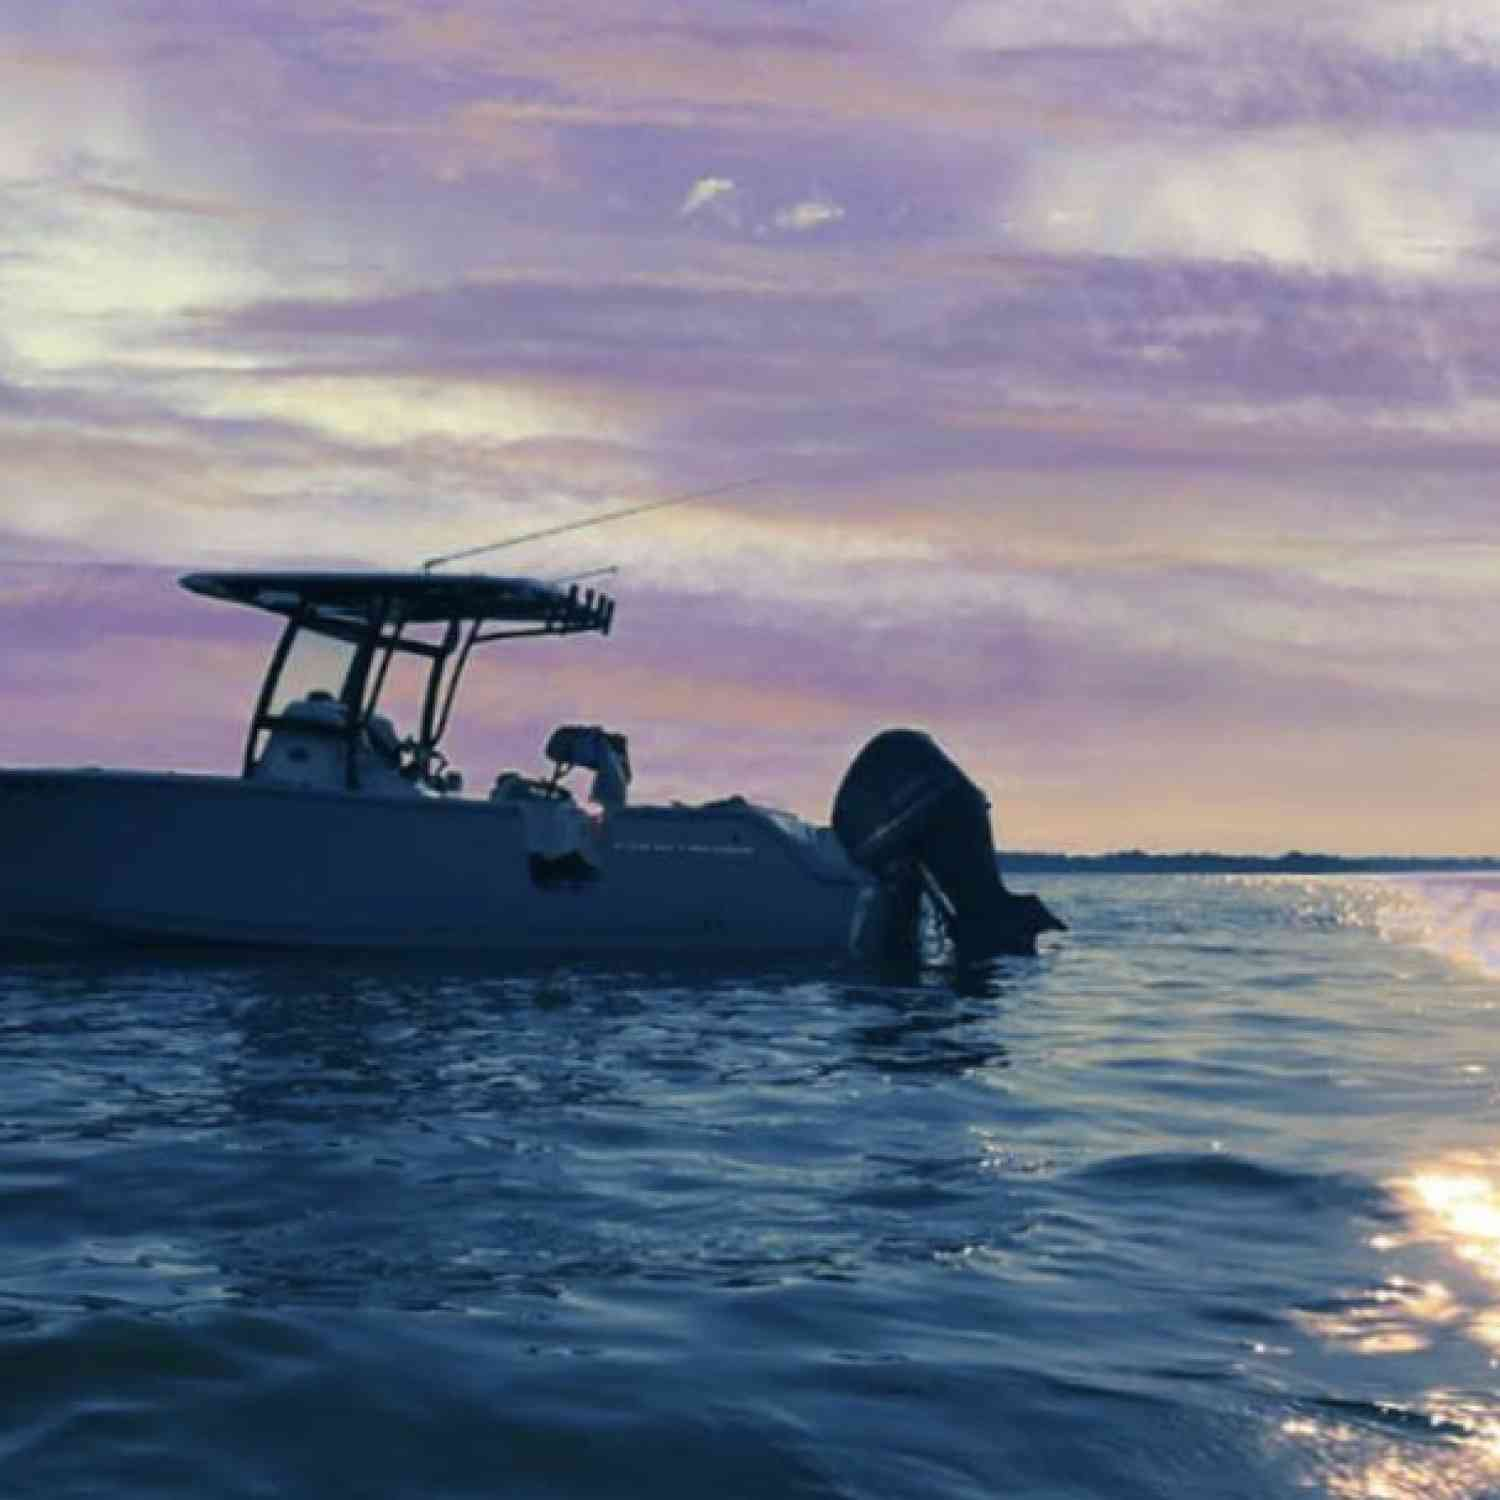 Title: Life on the Water - On board their Sportsman Heritage 251 Center Console - Location: Chesapeake Bay. Participating in the Photo Contest #SportsmanSeptember2018